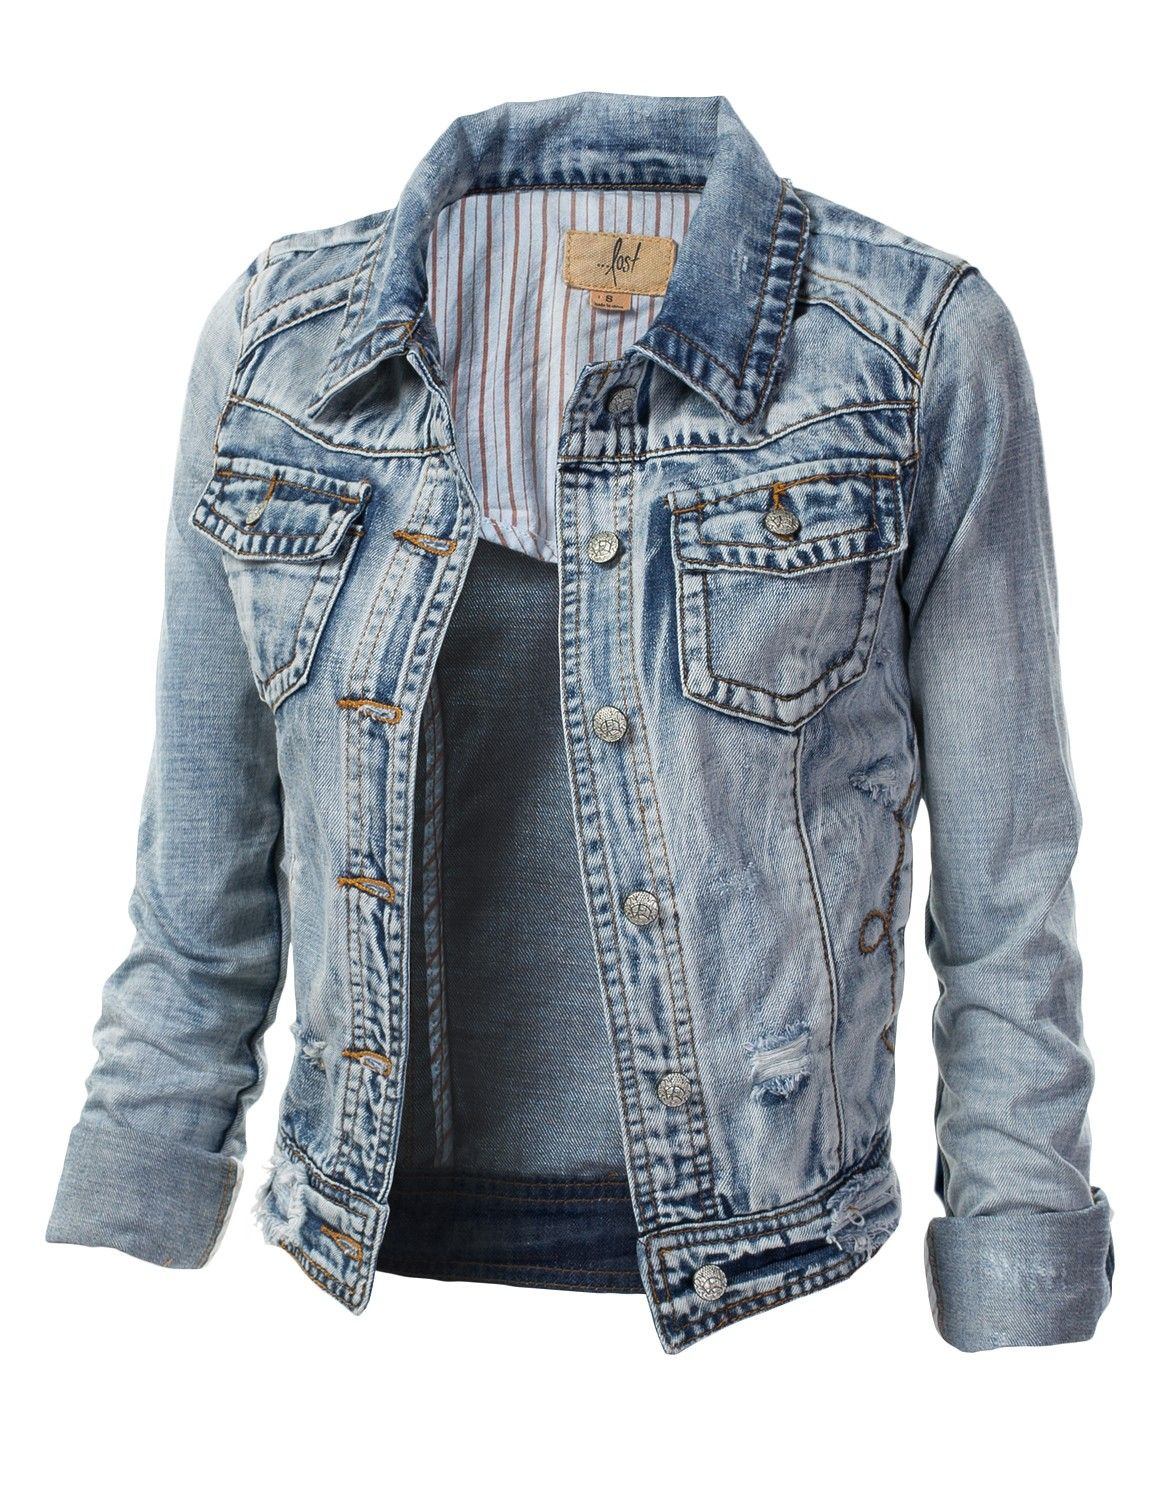 Stylish Denim Jackets for Women | All Fashion News - Fashion Blog ...